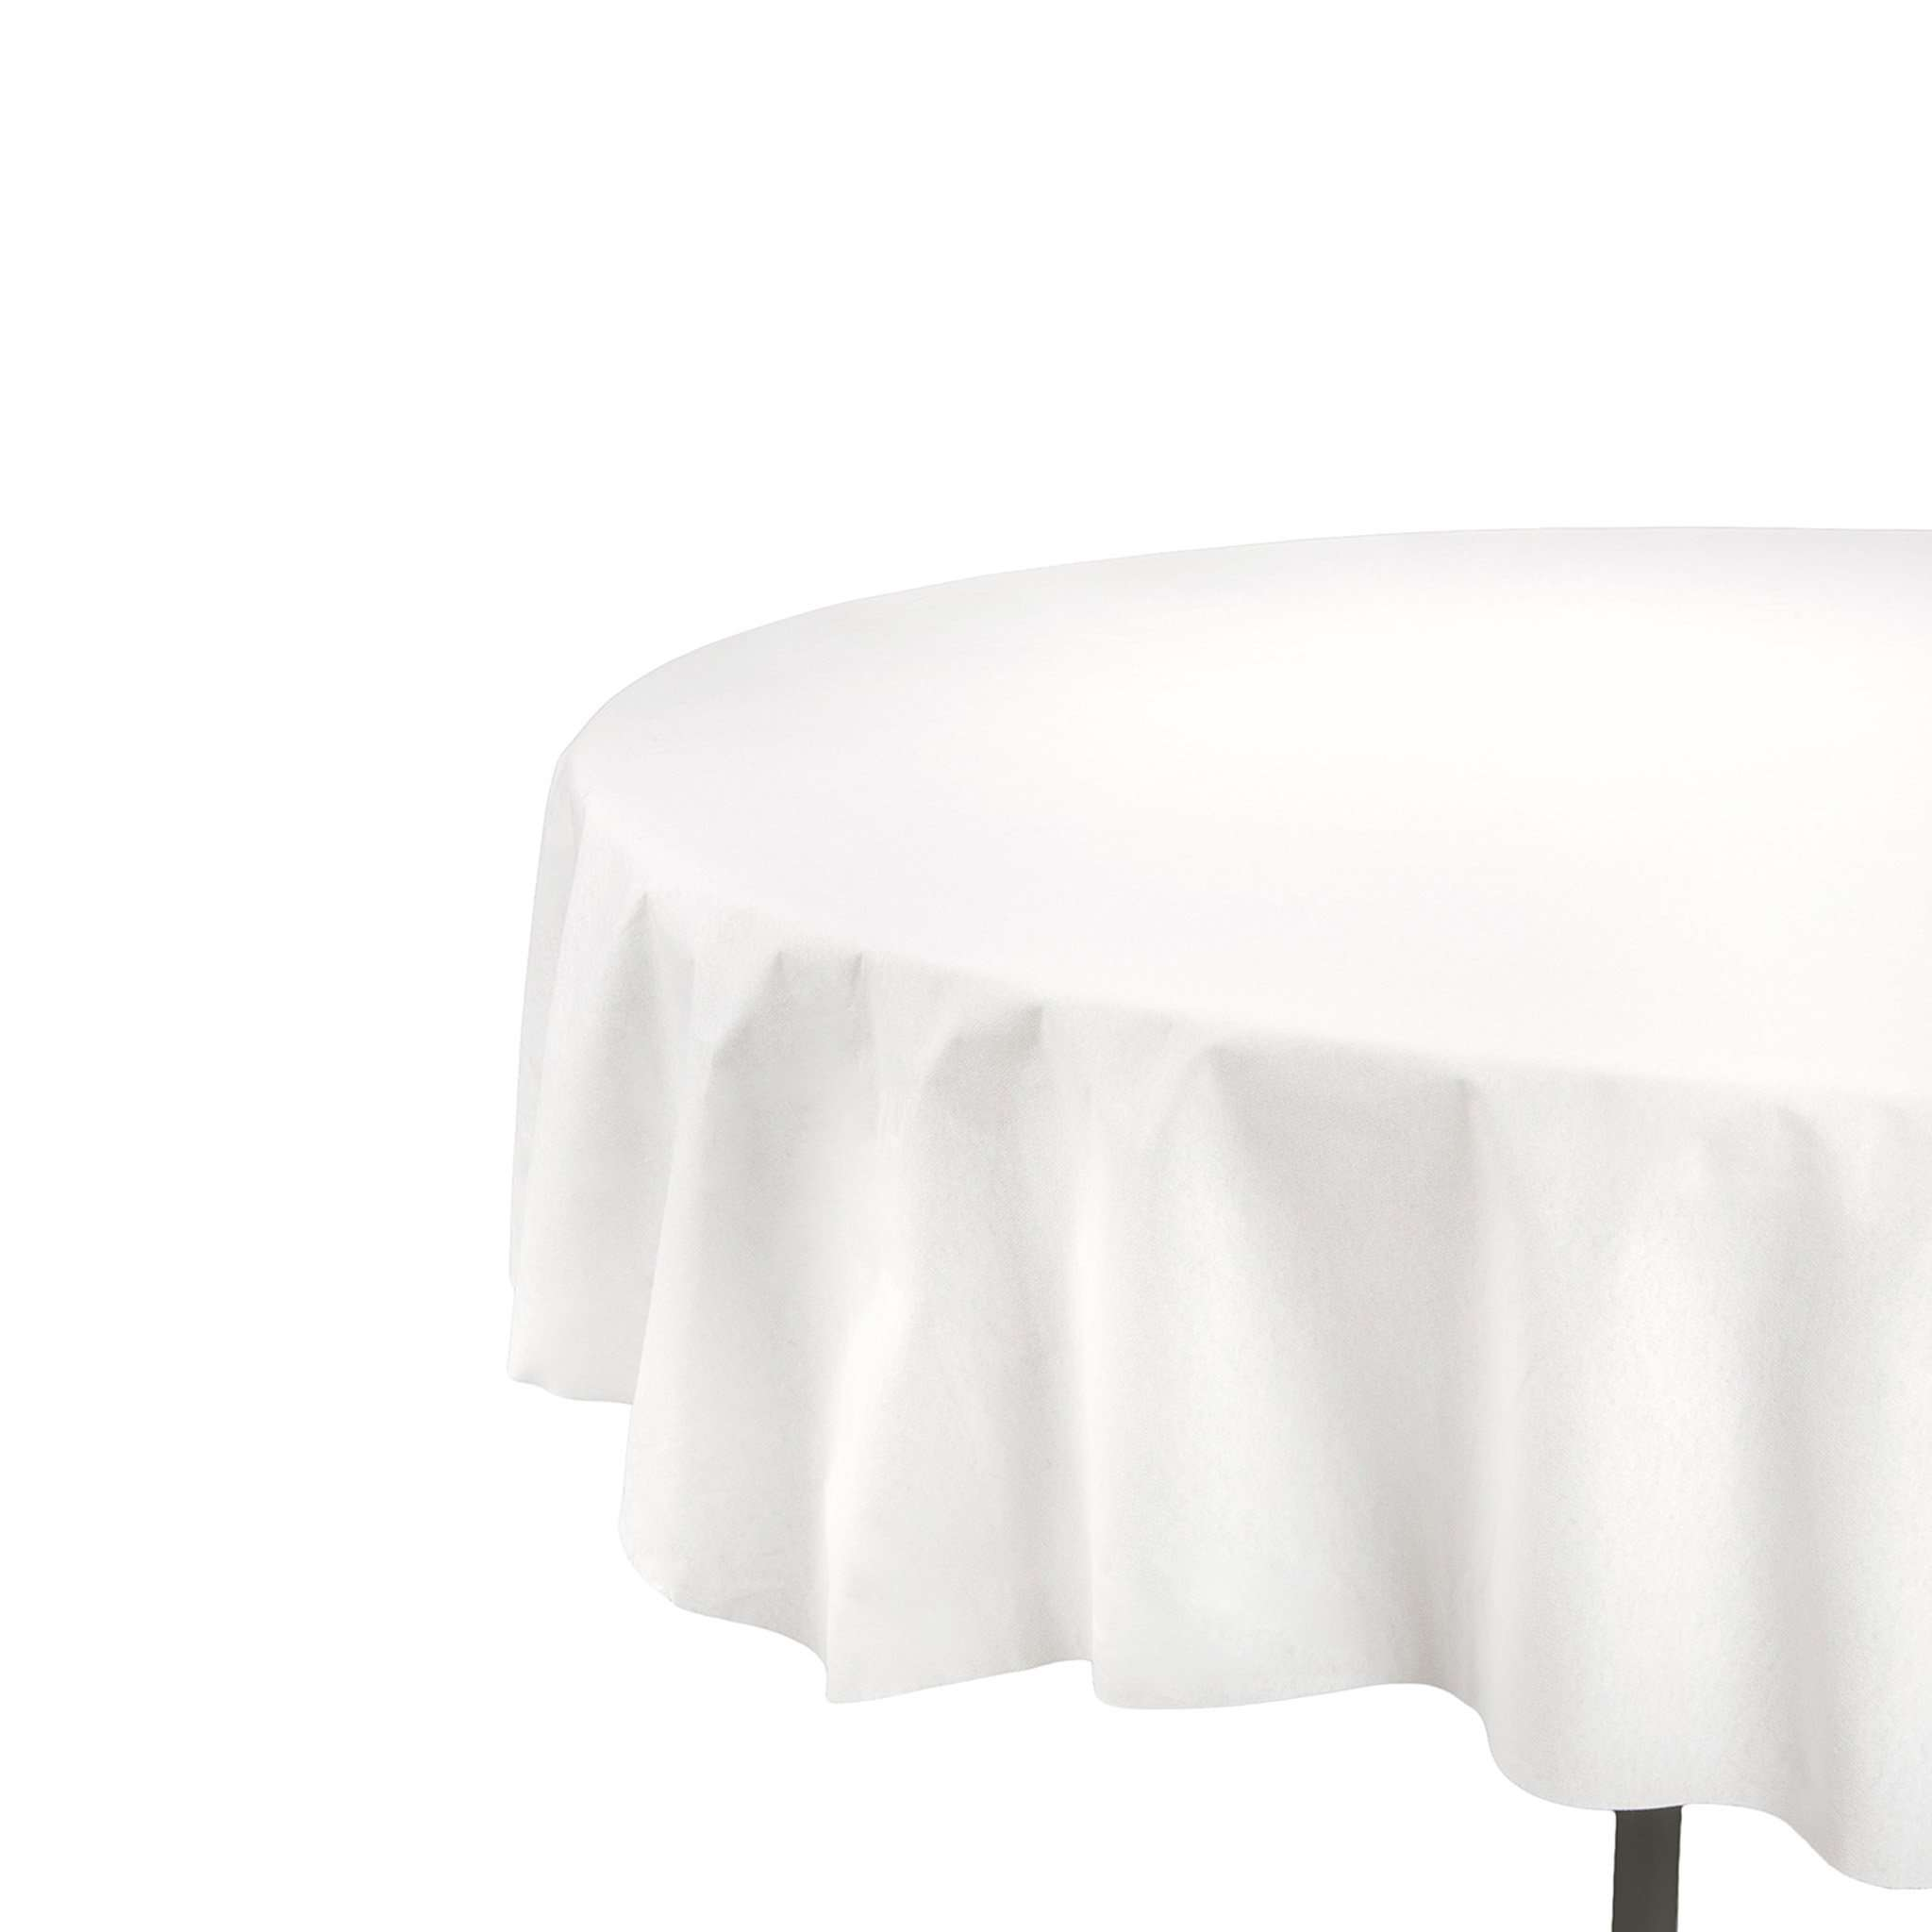 82\  White Octy Round Linen-Like Tablecloths  sc 1 st  Smarty Had A Party & Disposable Tablecloth - White Octy Round Linen-Like Tablecloths ...